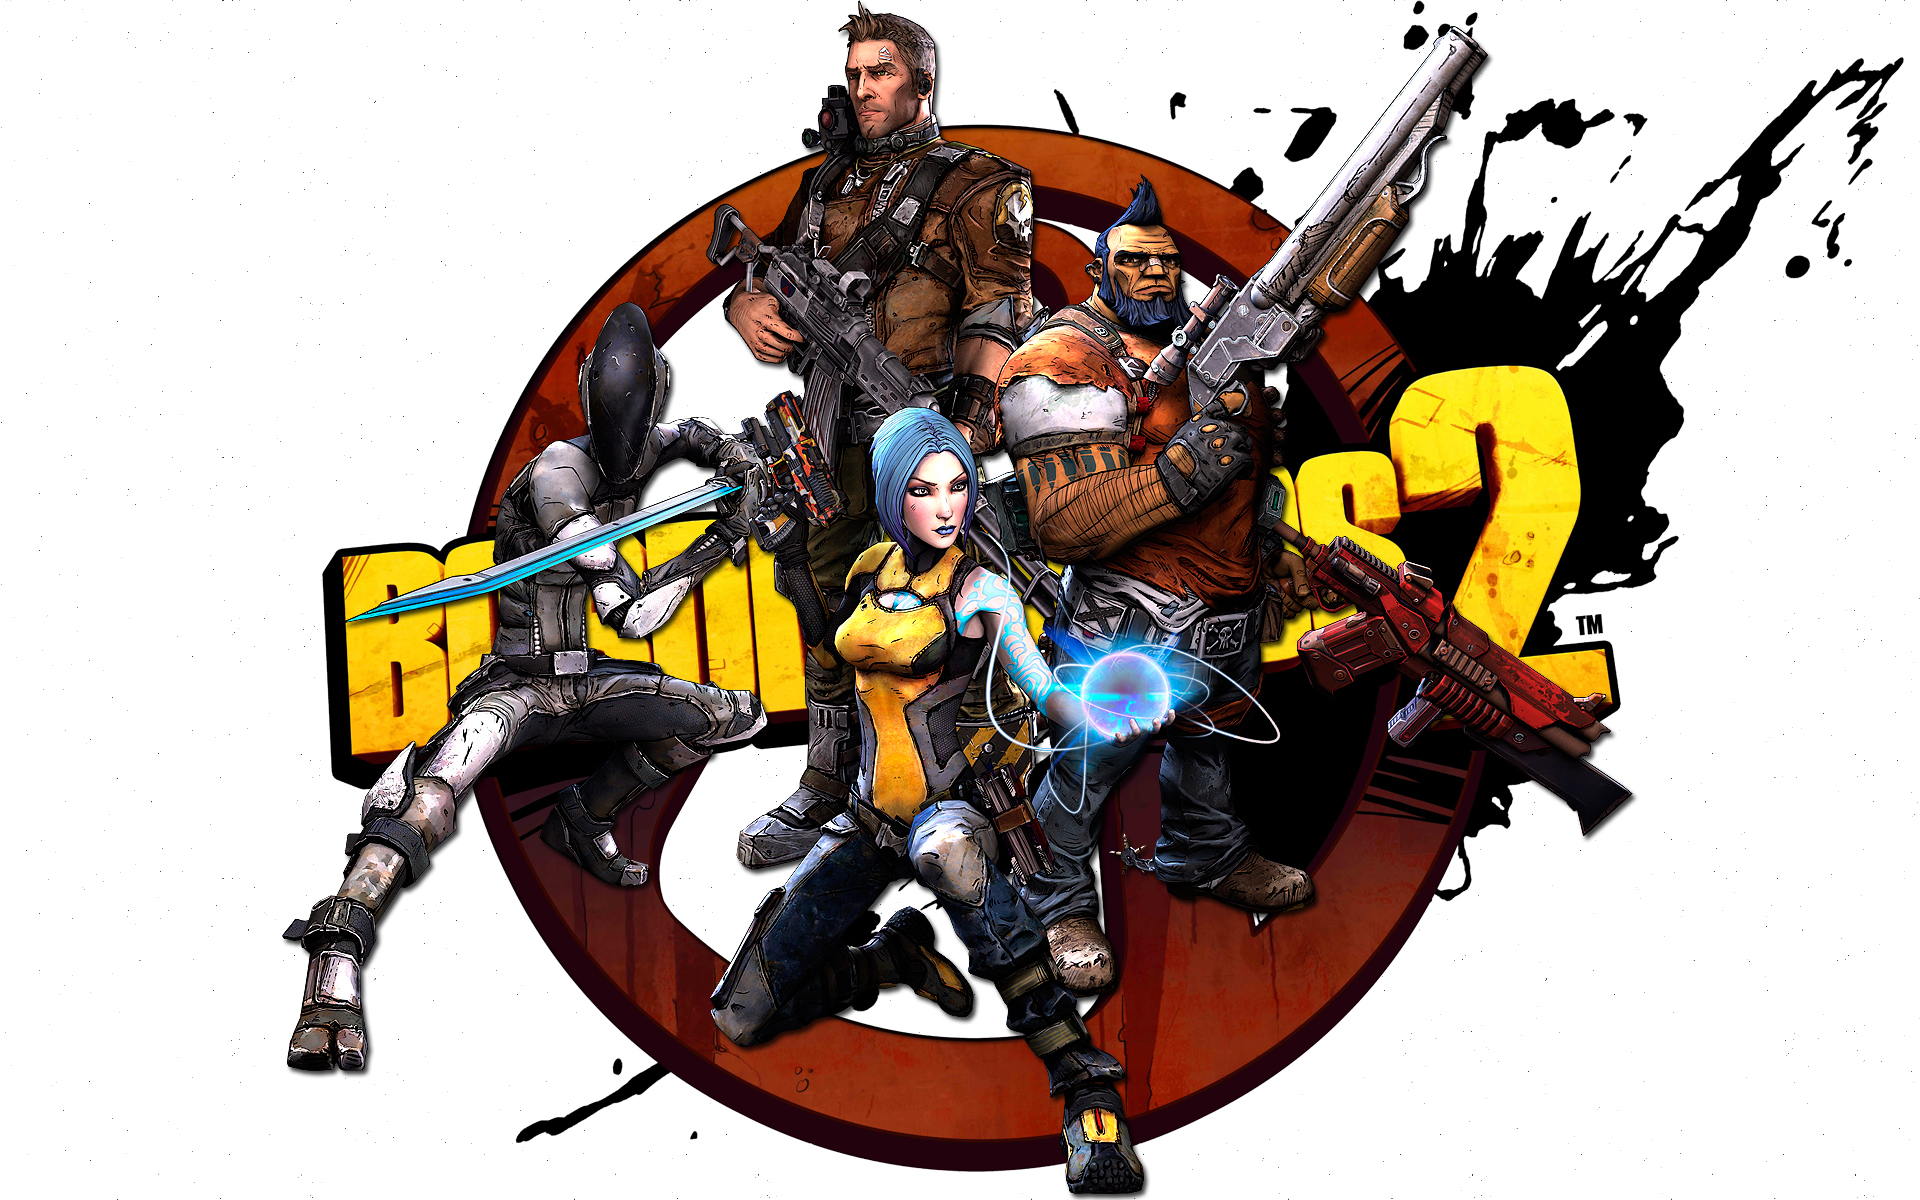 borderlands_2_lite_by_kraytos-d4sfruy